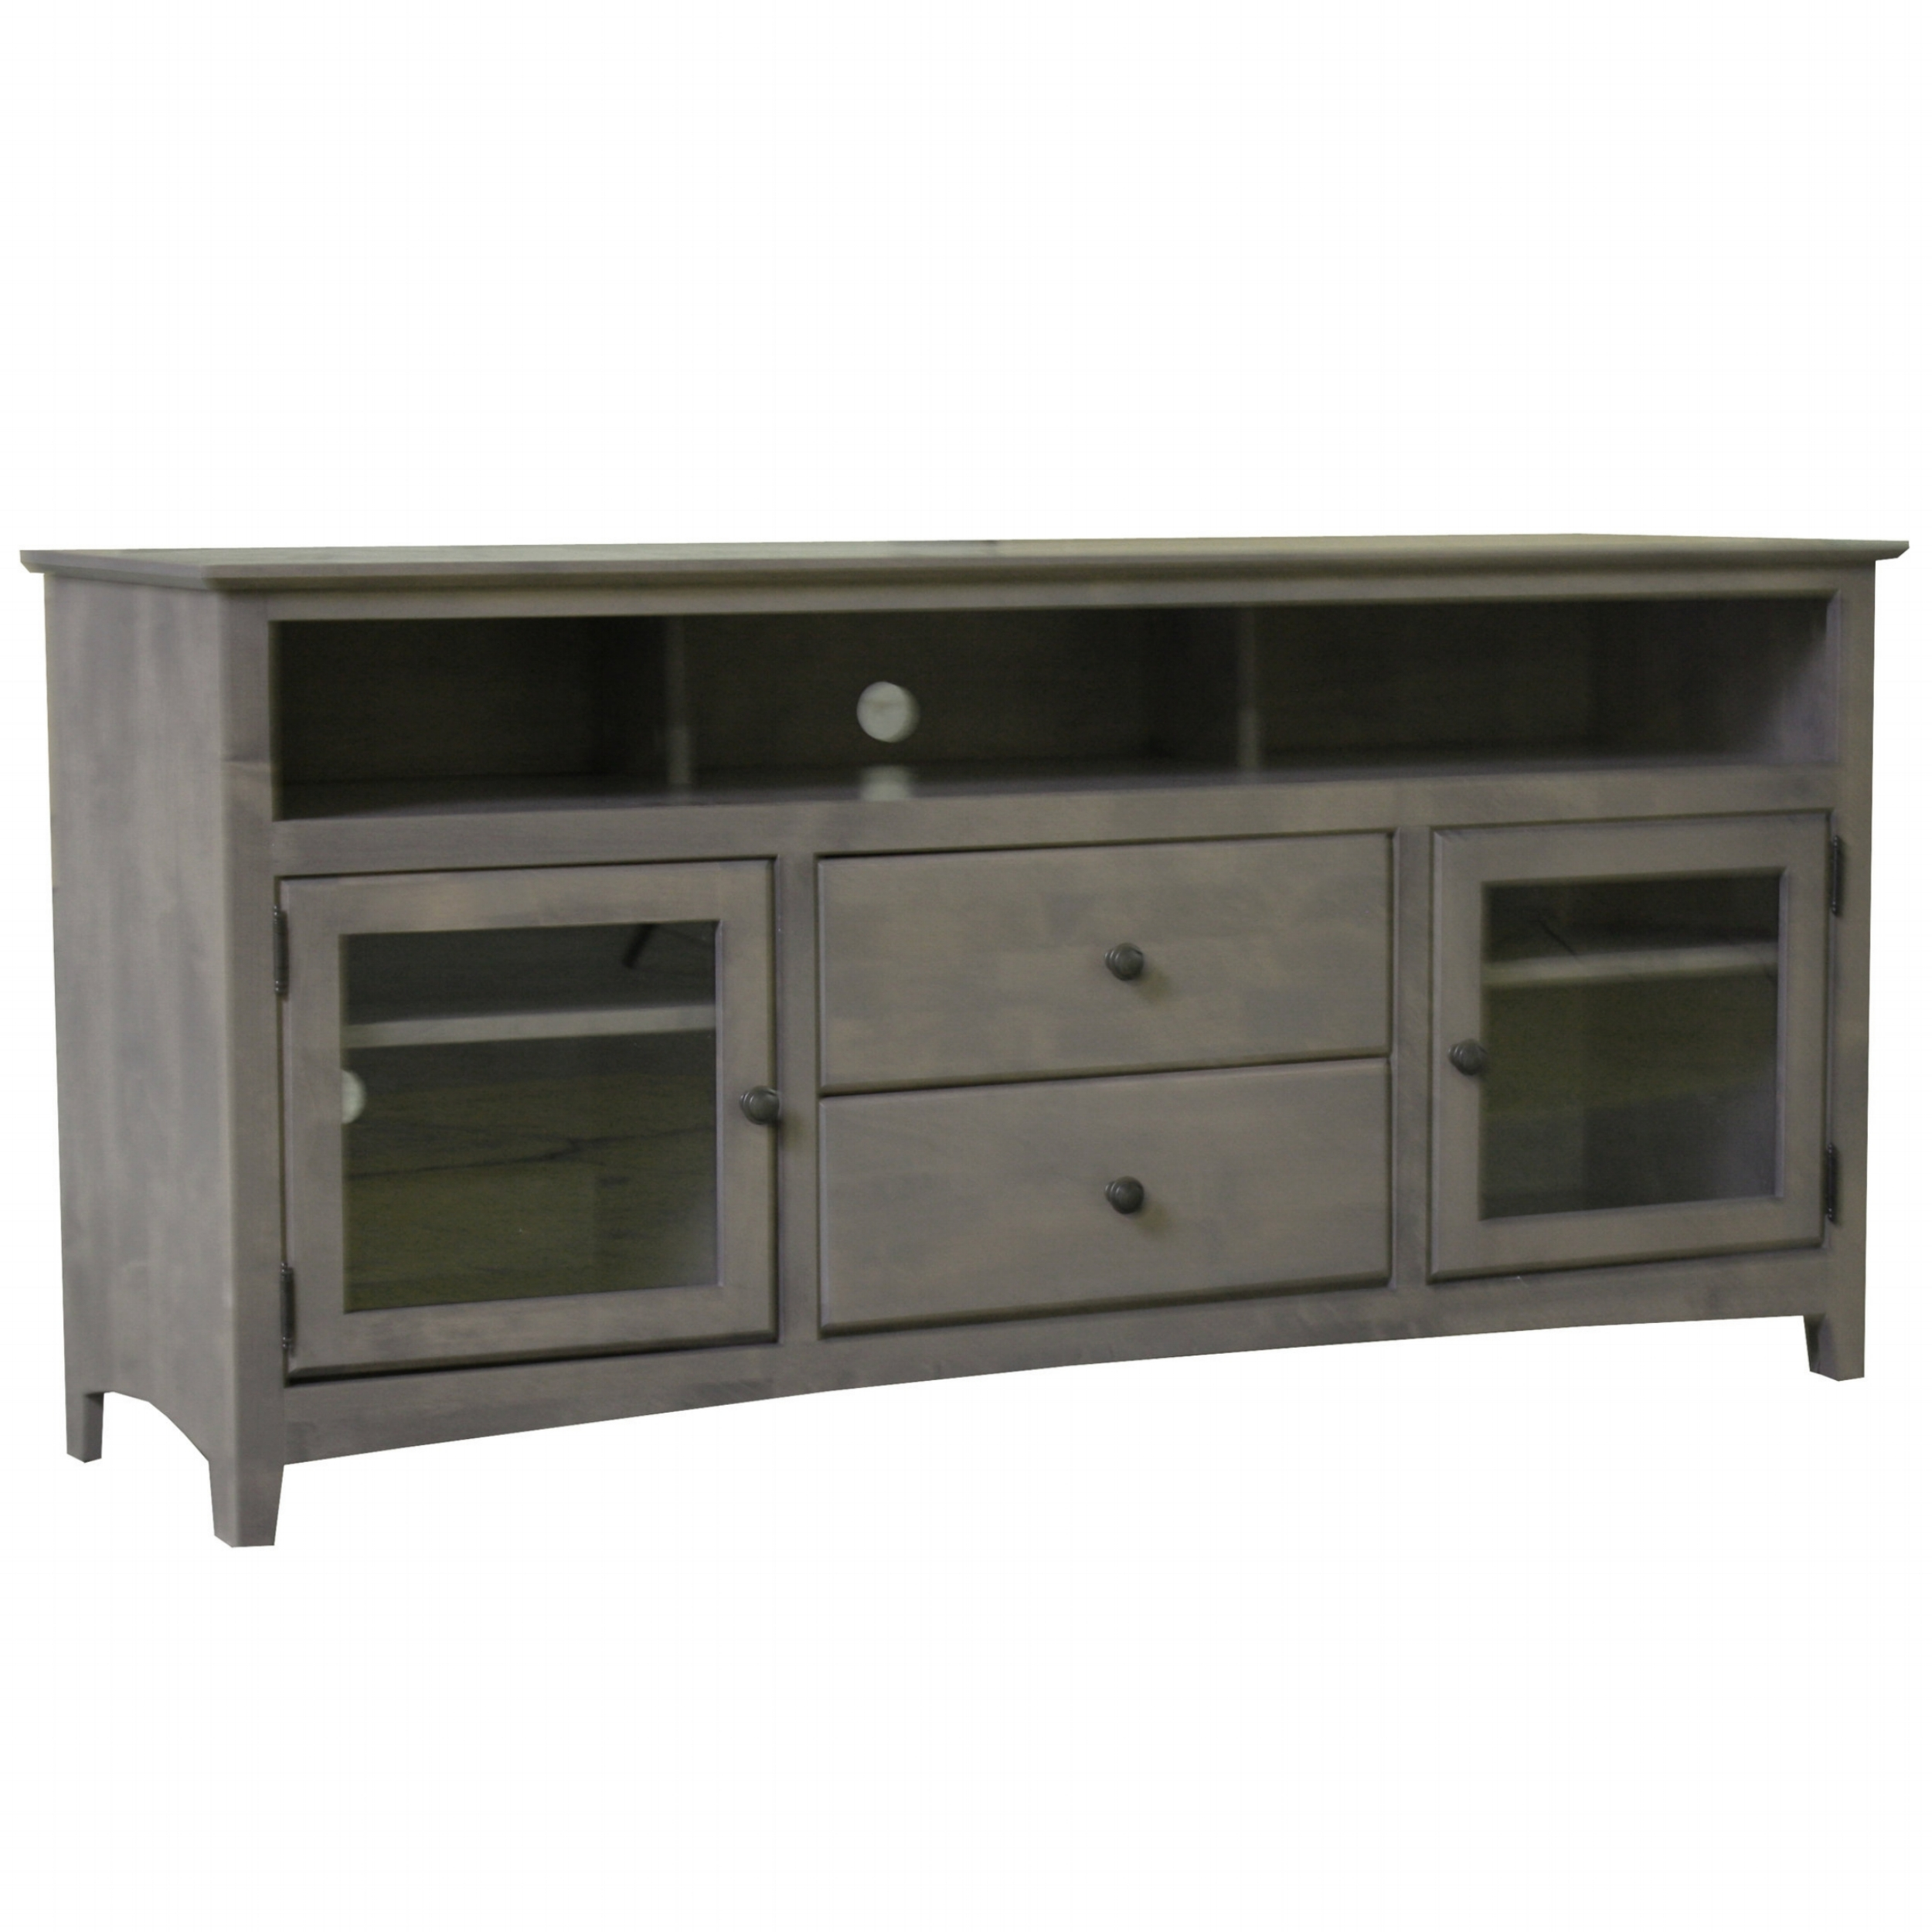 TV Stands - Archbold - TV console 62 wide open space - Finished.jpg